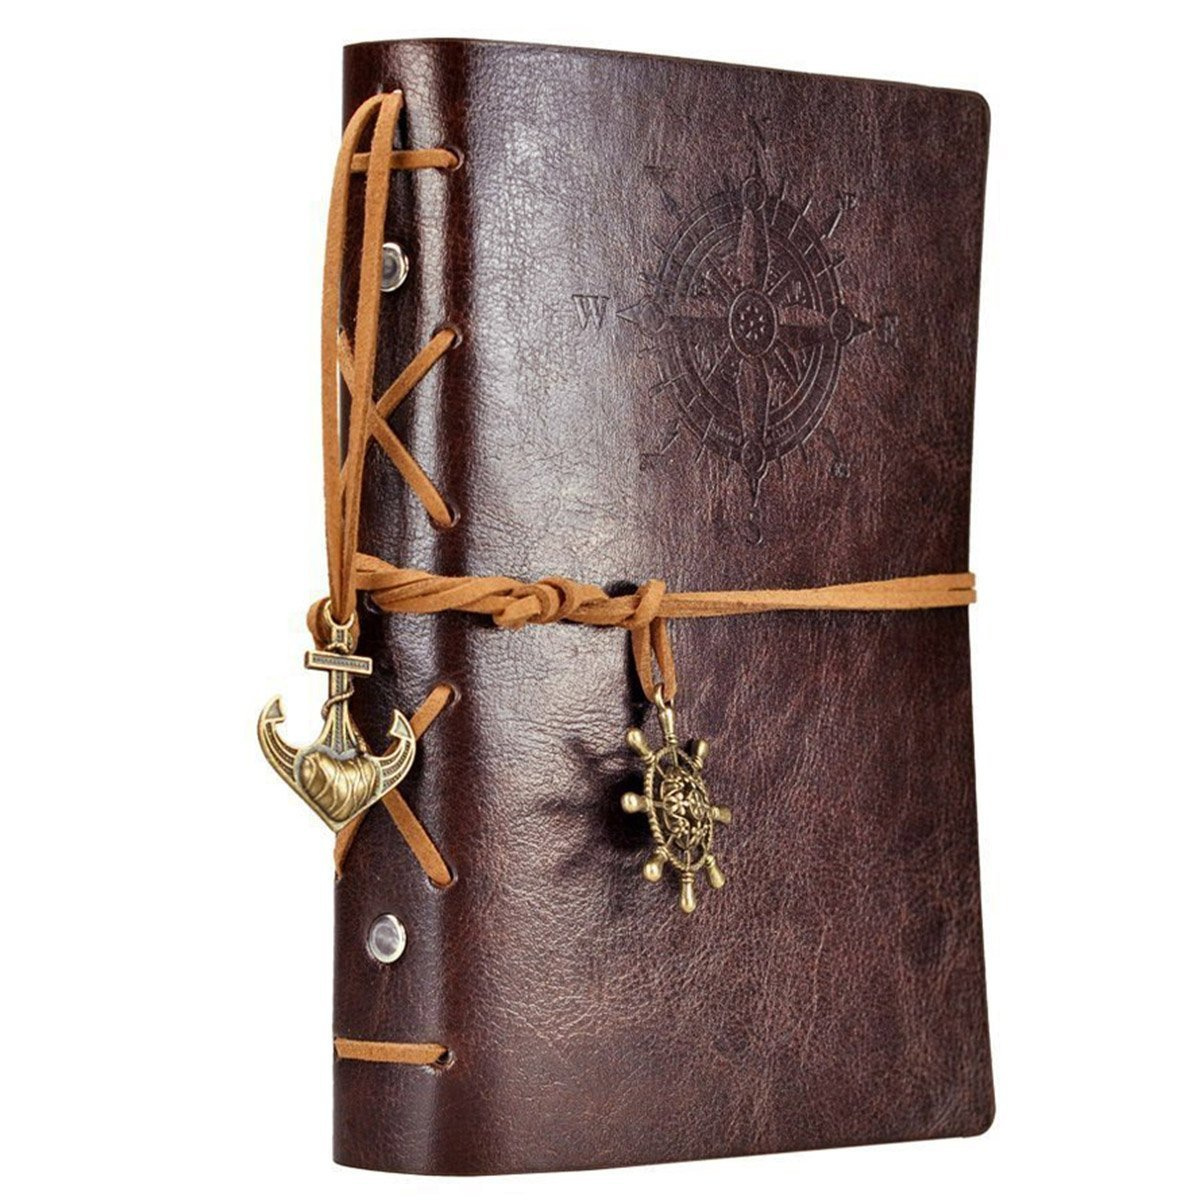 EvZ Leather Writing Journal Notebook, 7 Inches Vintage Nautical Spiral Blank String Diary Notepad Sketchbook Travel to Write in, Unlined Paper, Retro Pendants, Classic Embossed, Coffee